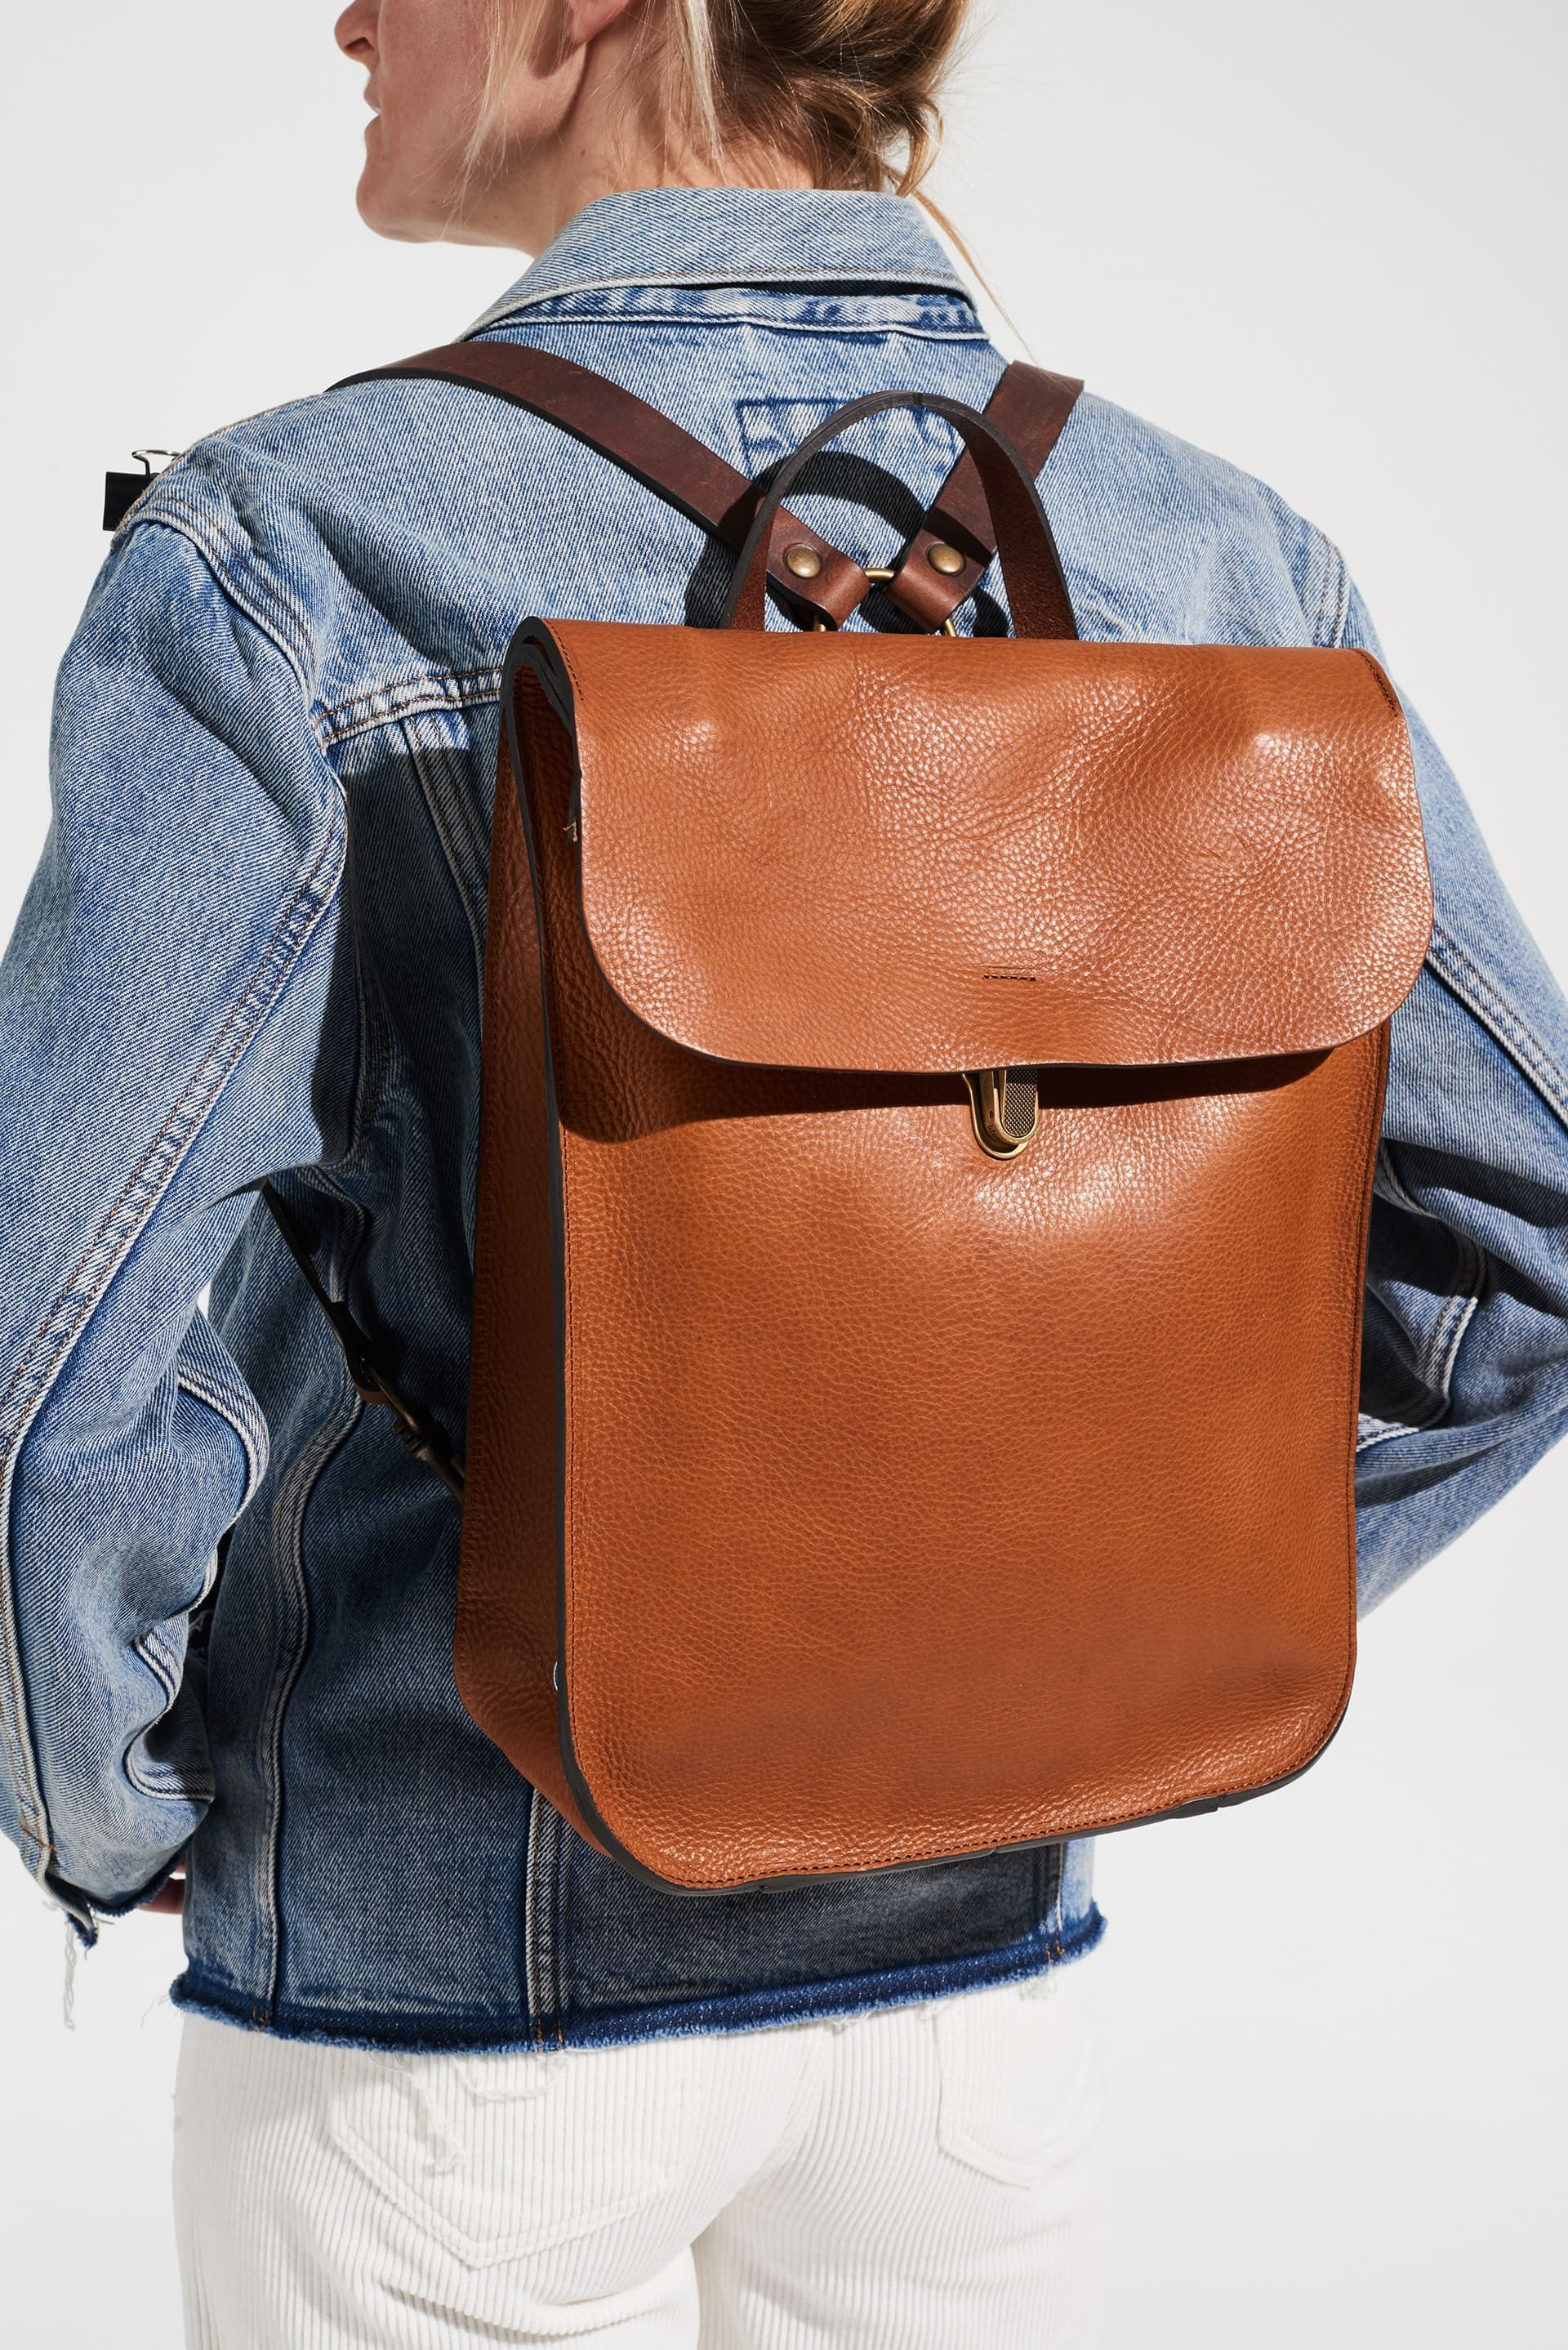 0fc7c157626 Puncho leather backpack - Cuba Libre in 2019 | Bags | Leather ...